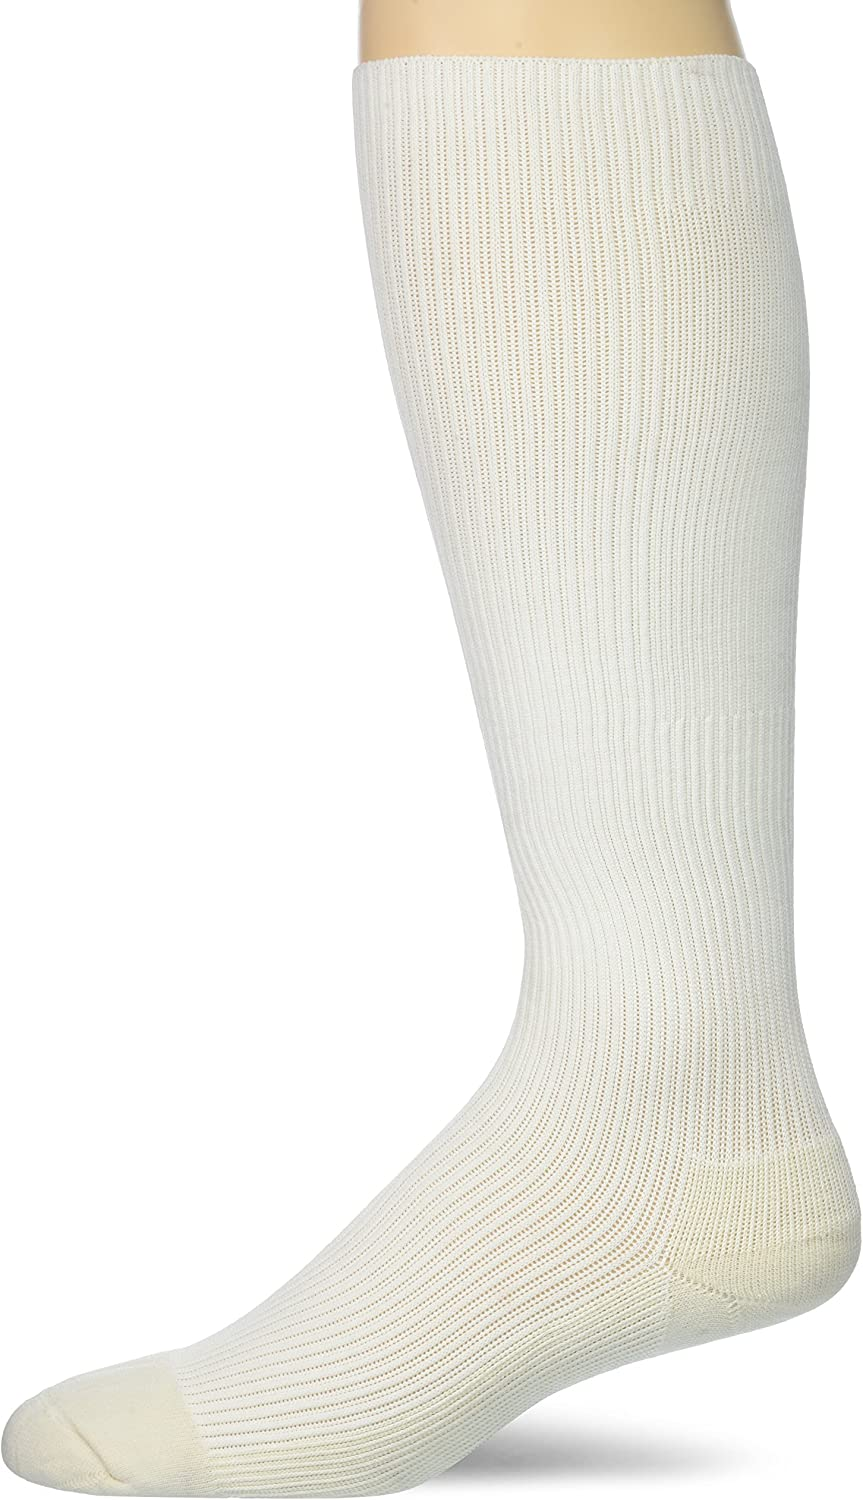 Curad MDS1715AWH Cushioned Compression 15-20 Socks Special price Now on sale mmHg